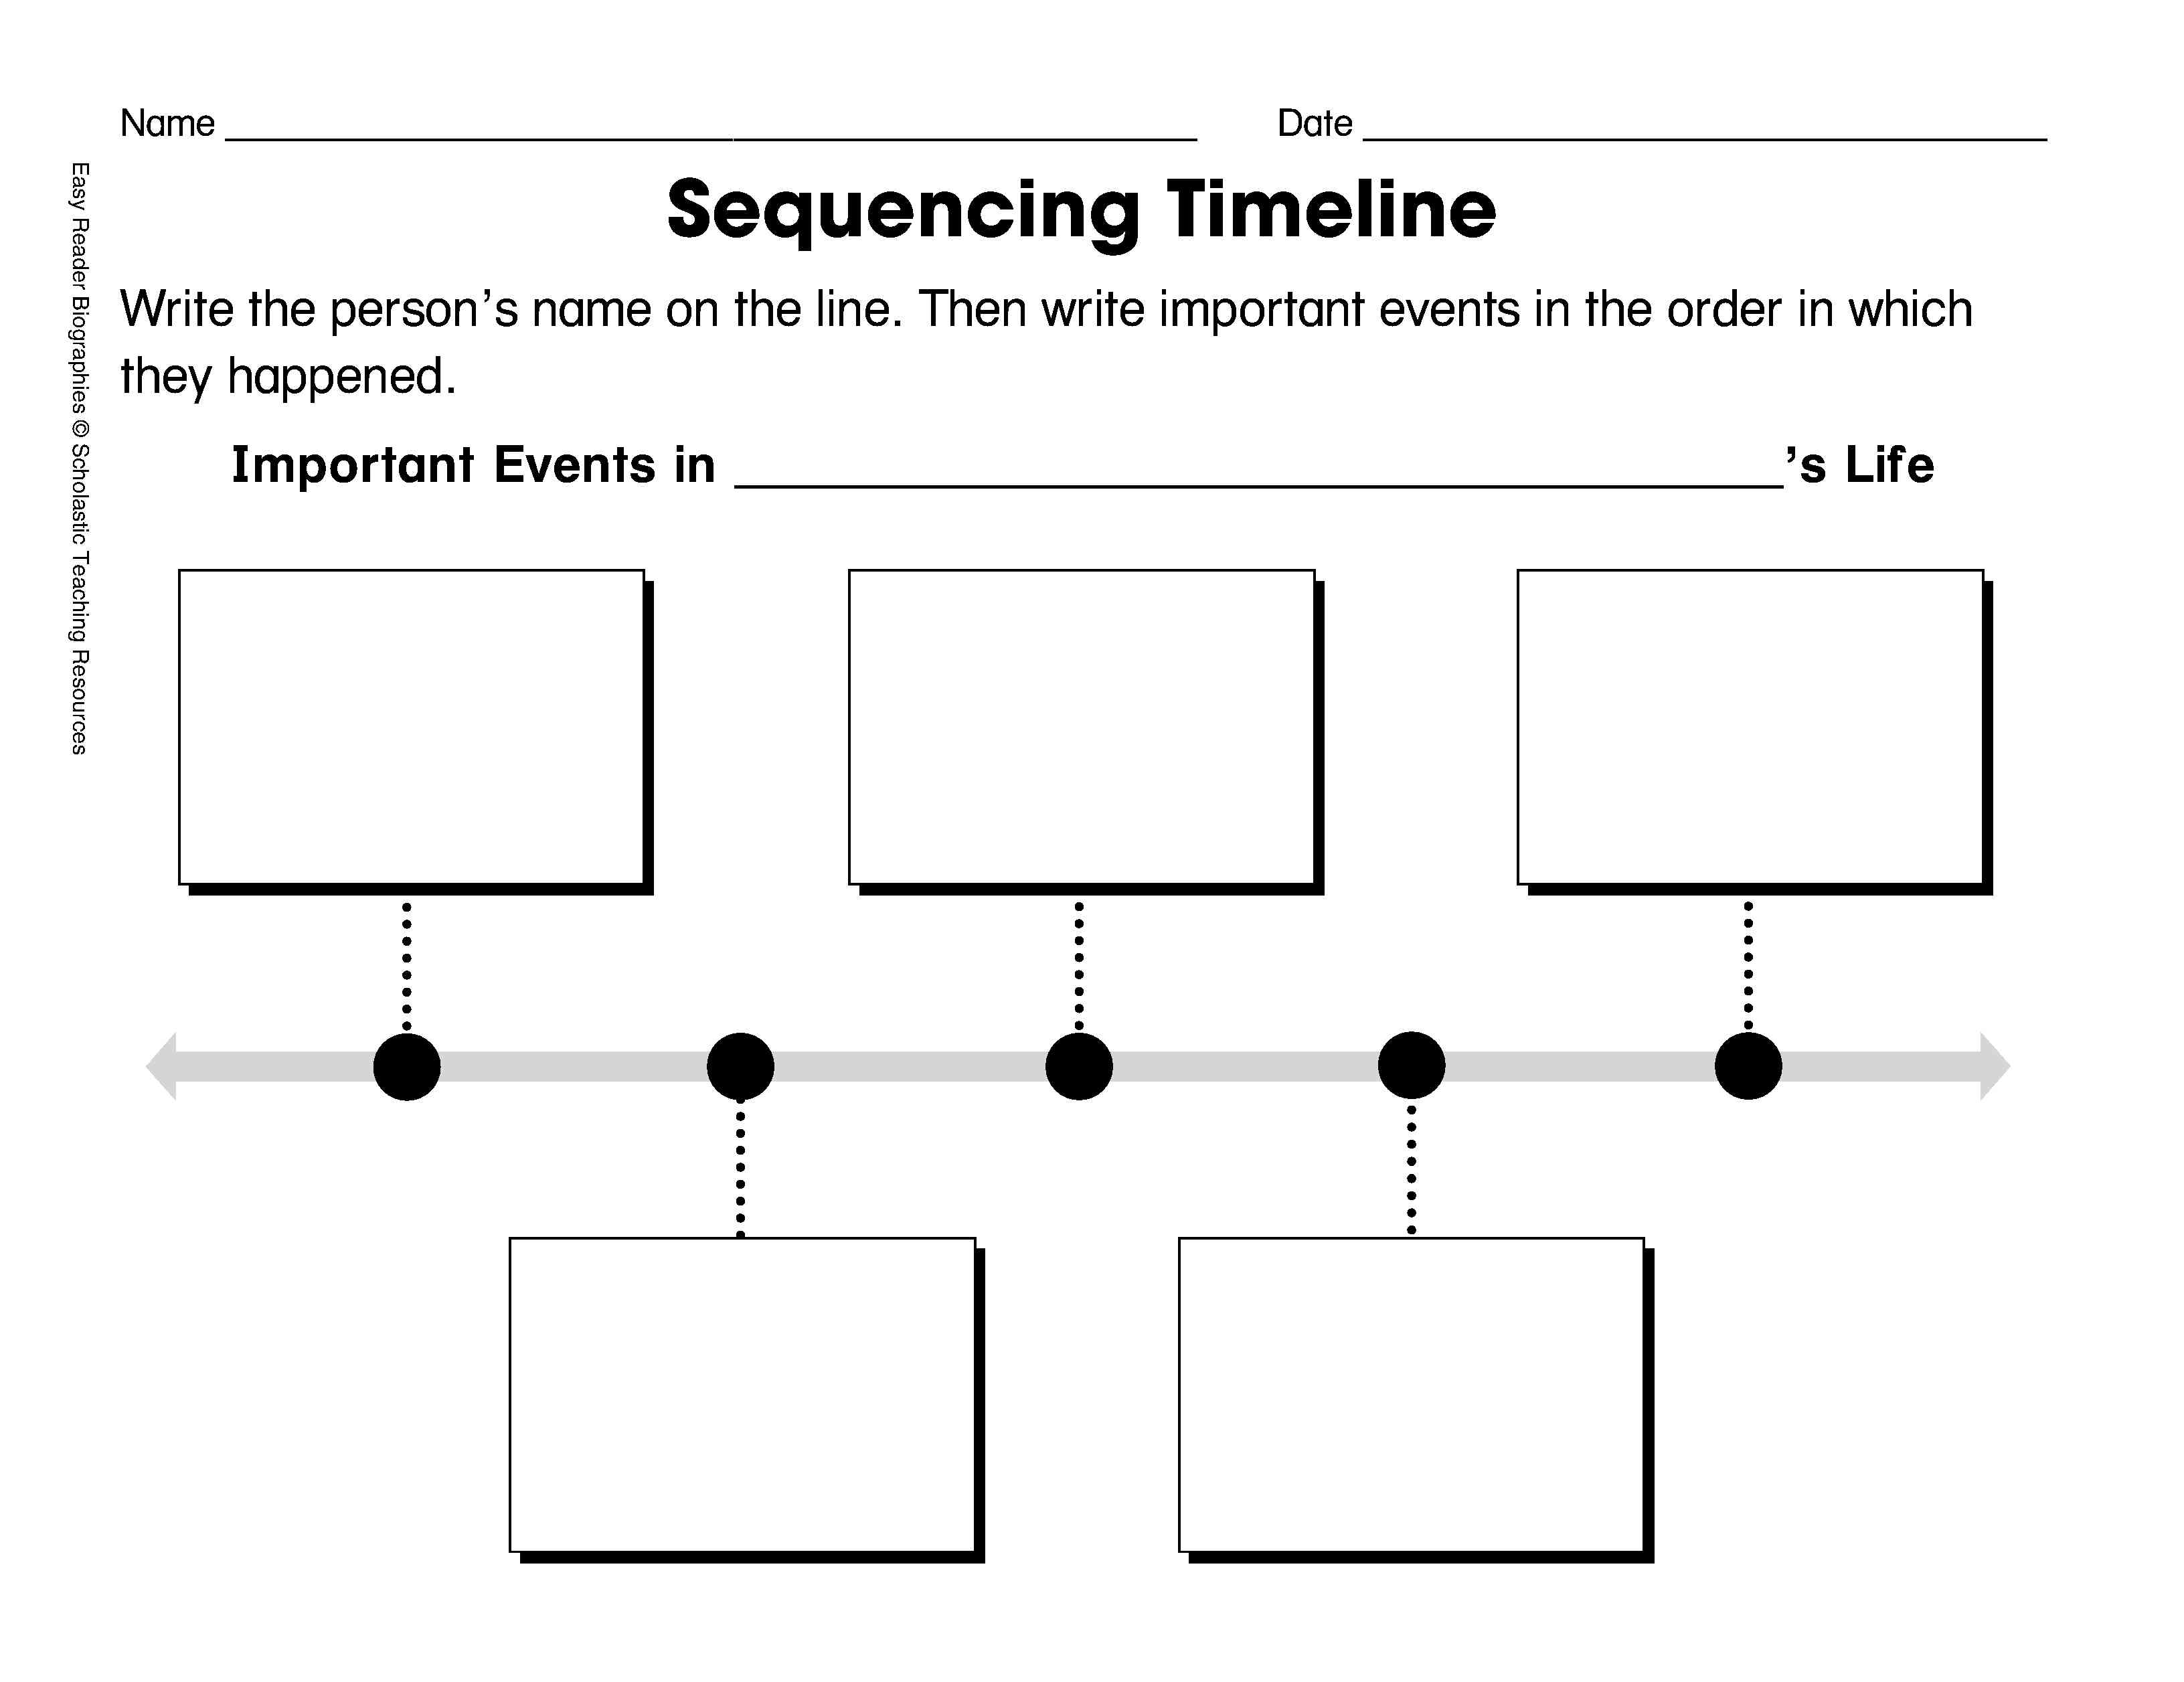 Sequencing Timeline Template: Ordering Biographical Events - Free Printable Sequence Of Events Graphic Organizer